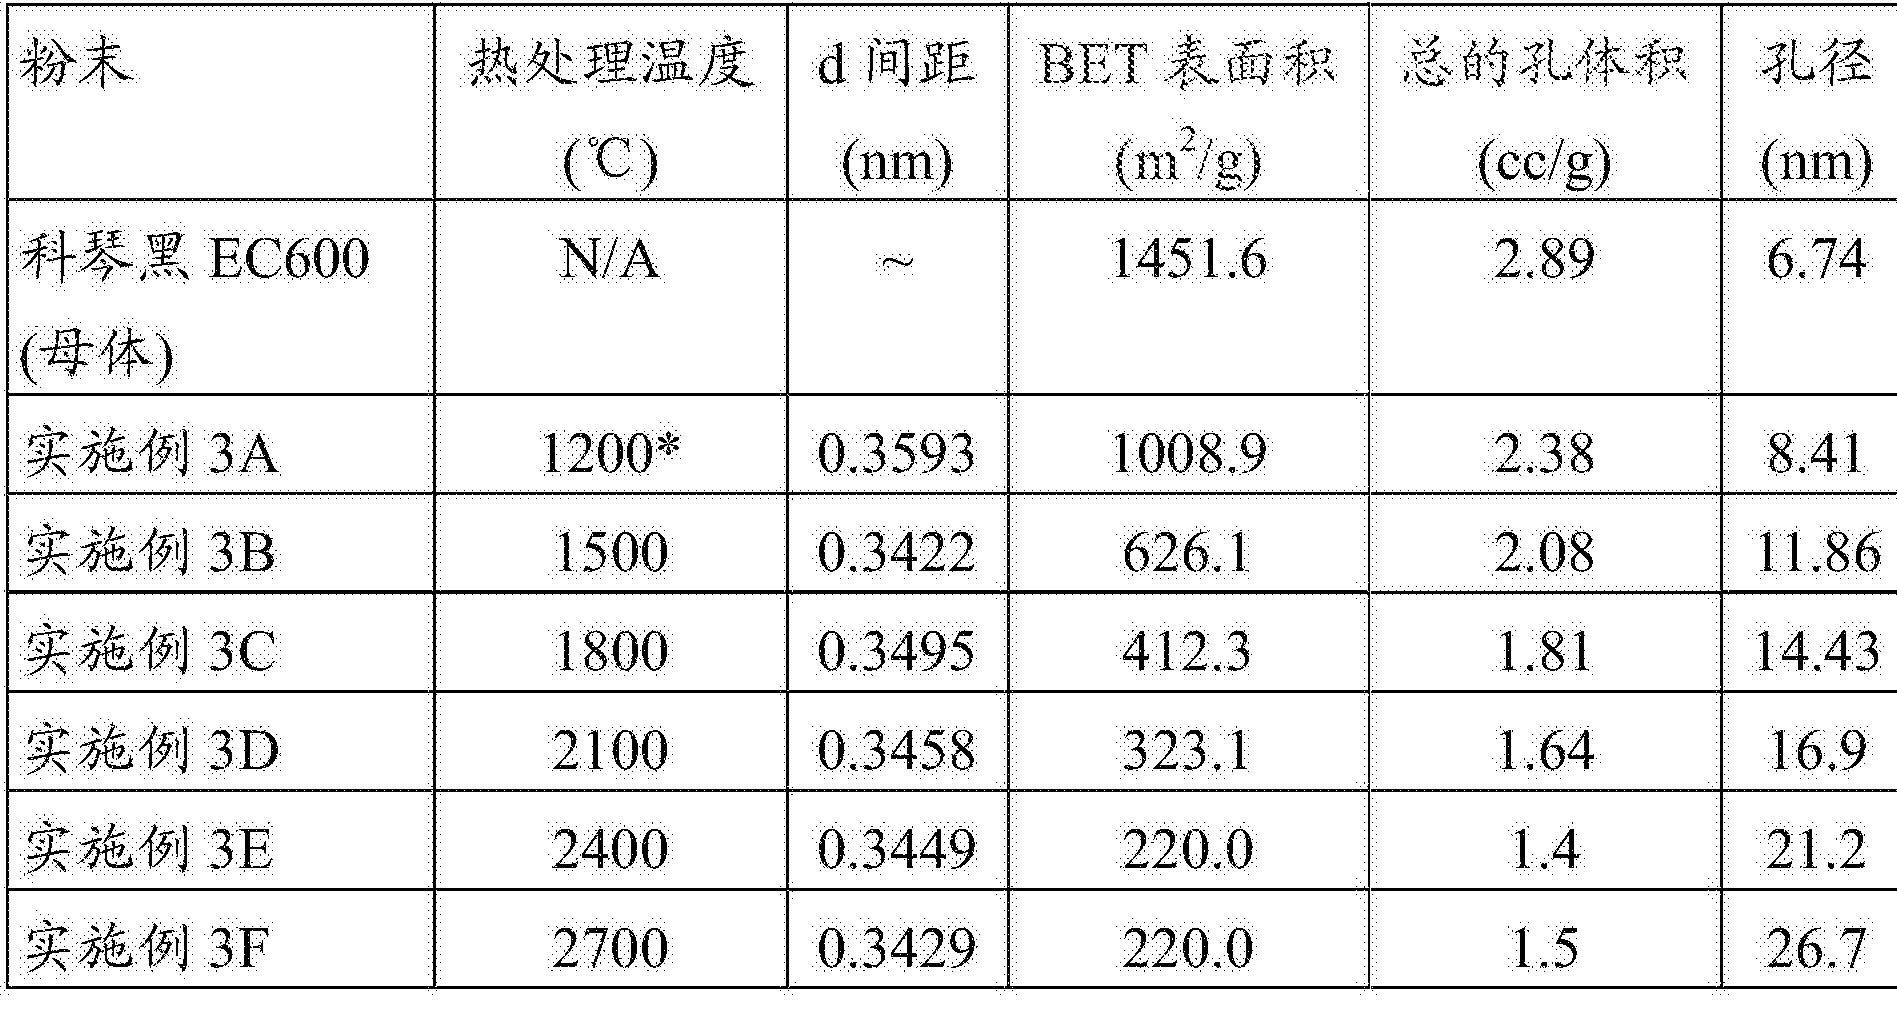 CN105047951A - High surface area graphitized carbon and